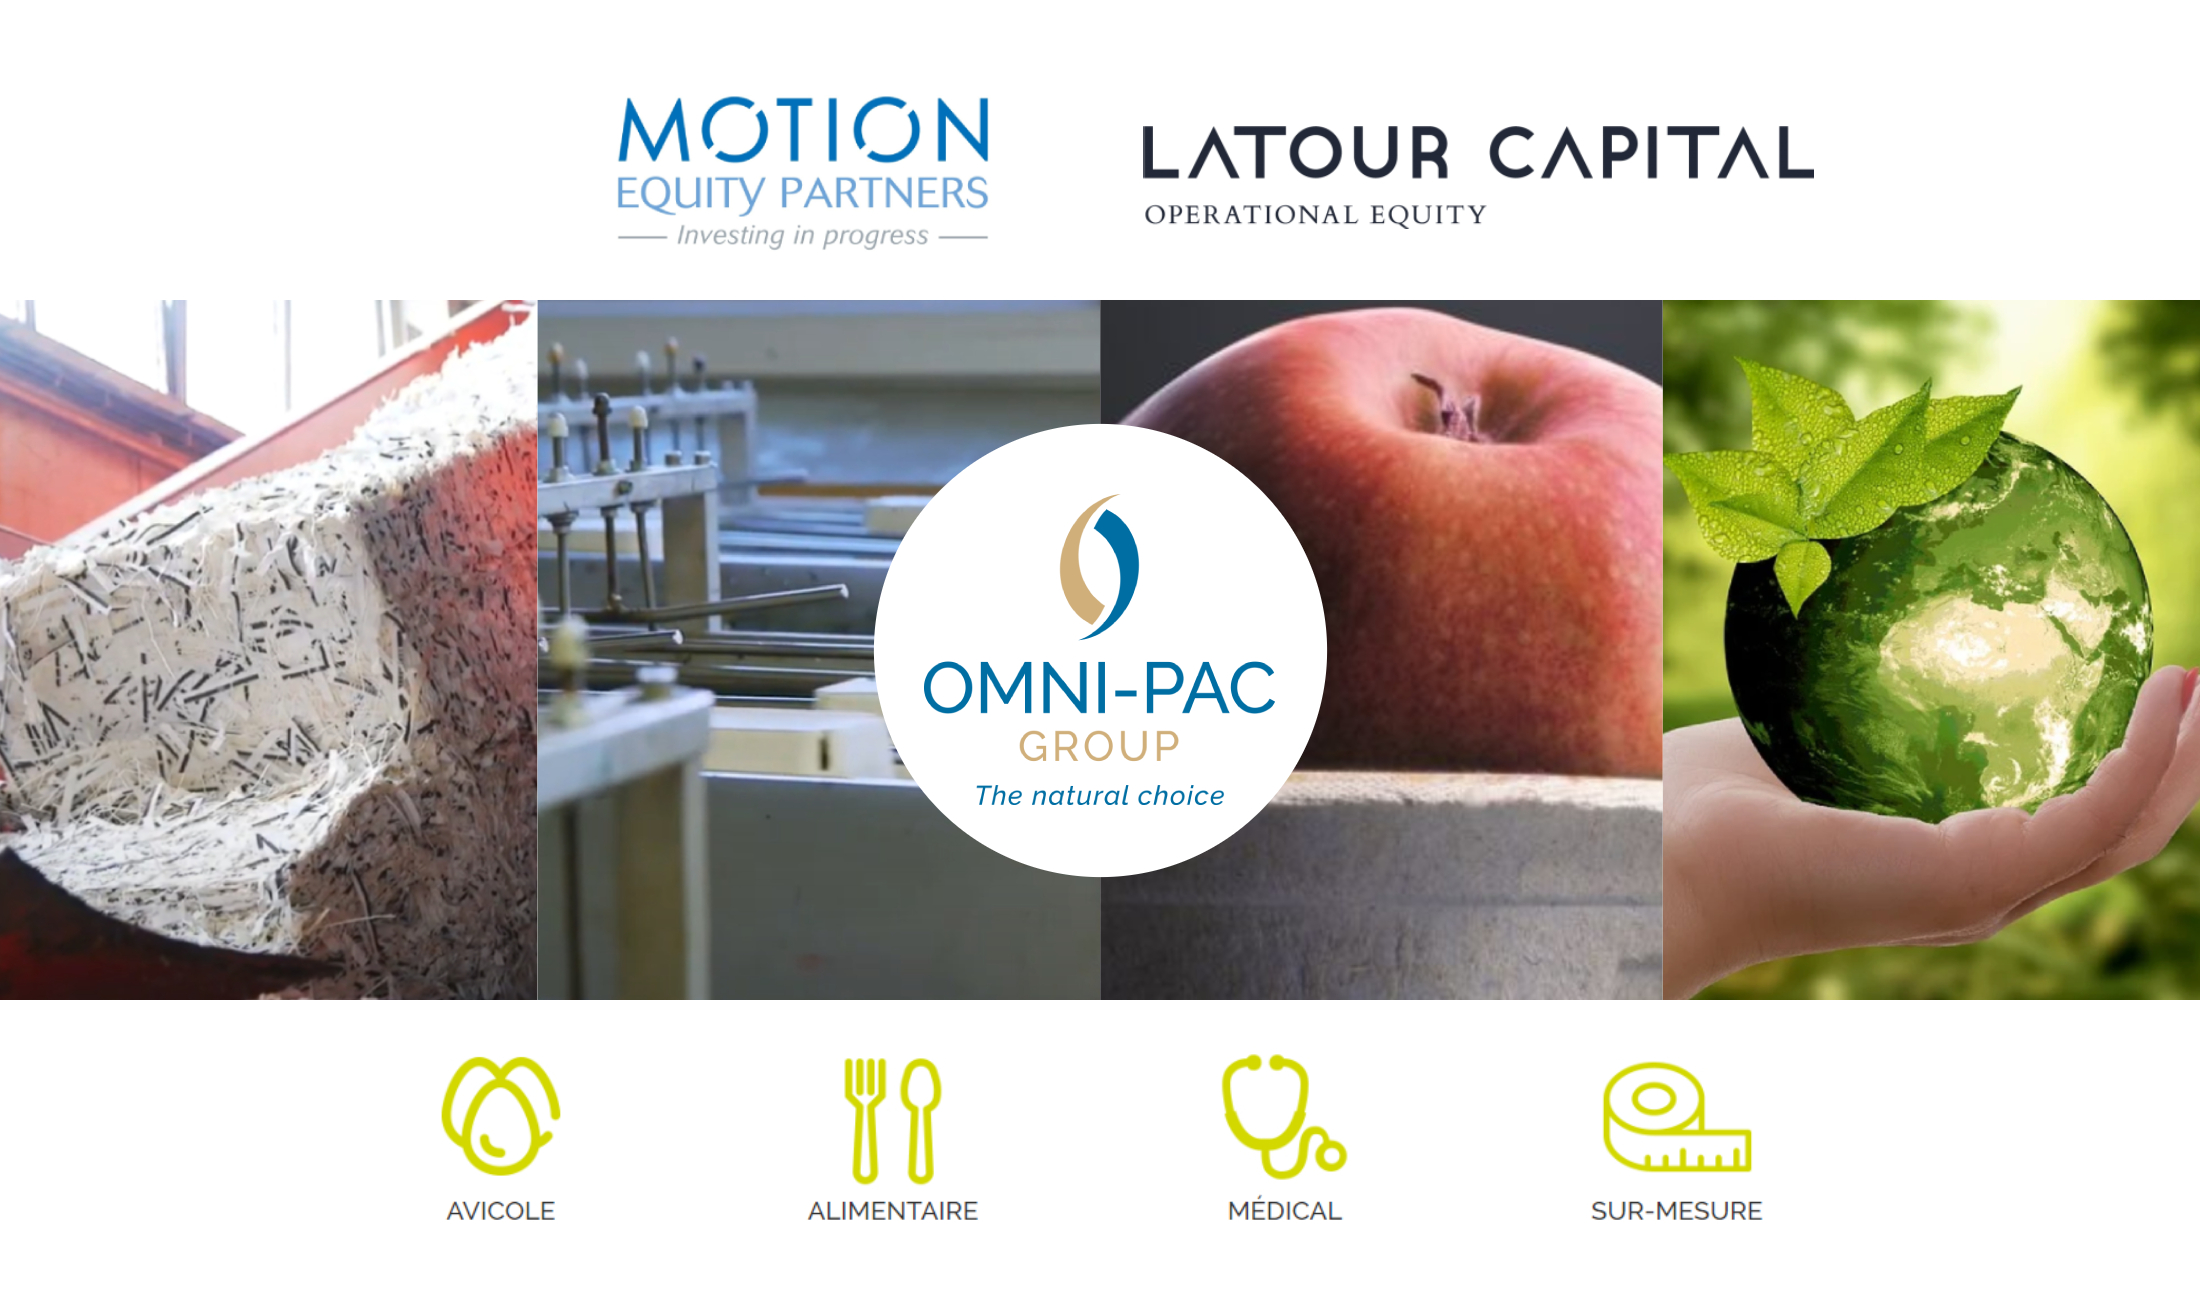 Motion Equity Partners annonce la signature d'un accord d'exclusivité avec Latour Capital en vue de la cession de sa participation dans Omni-Pac Group